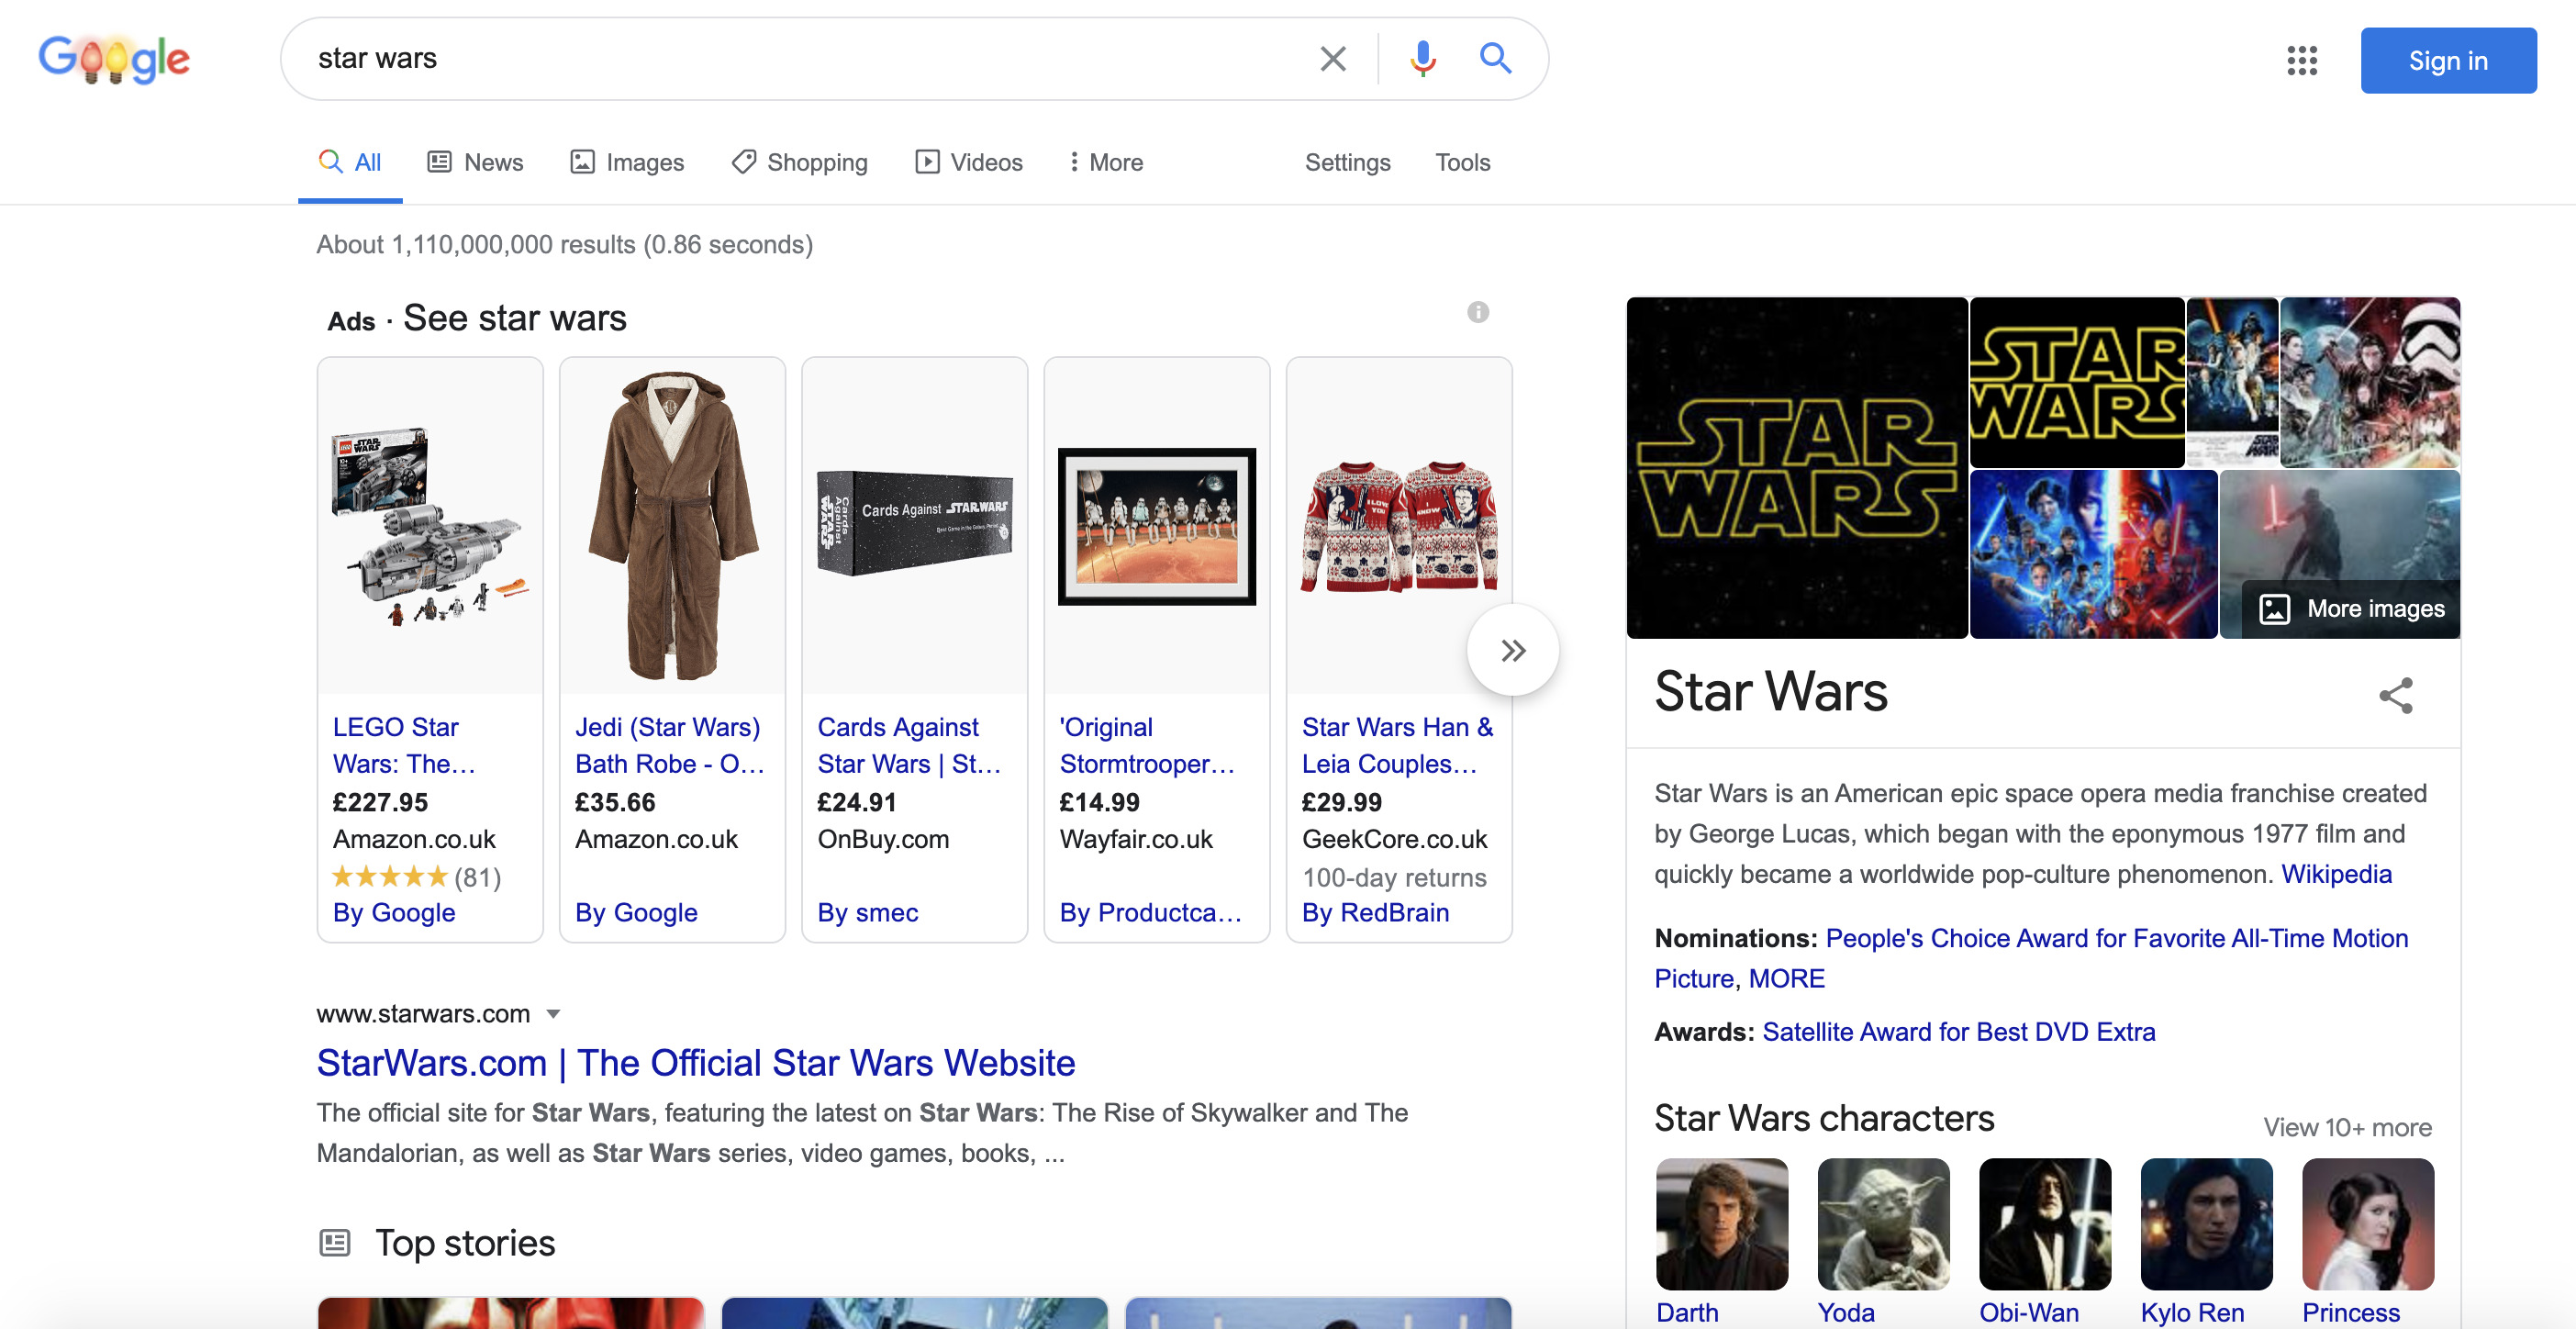 structured data shown in search results